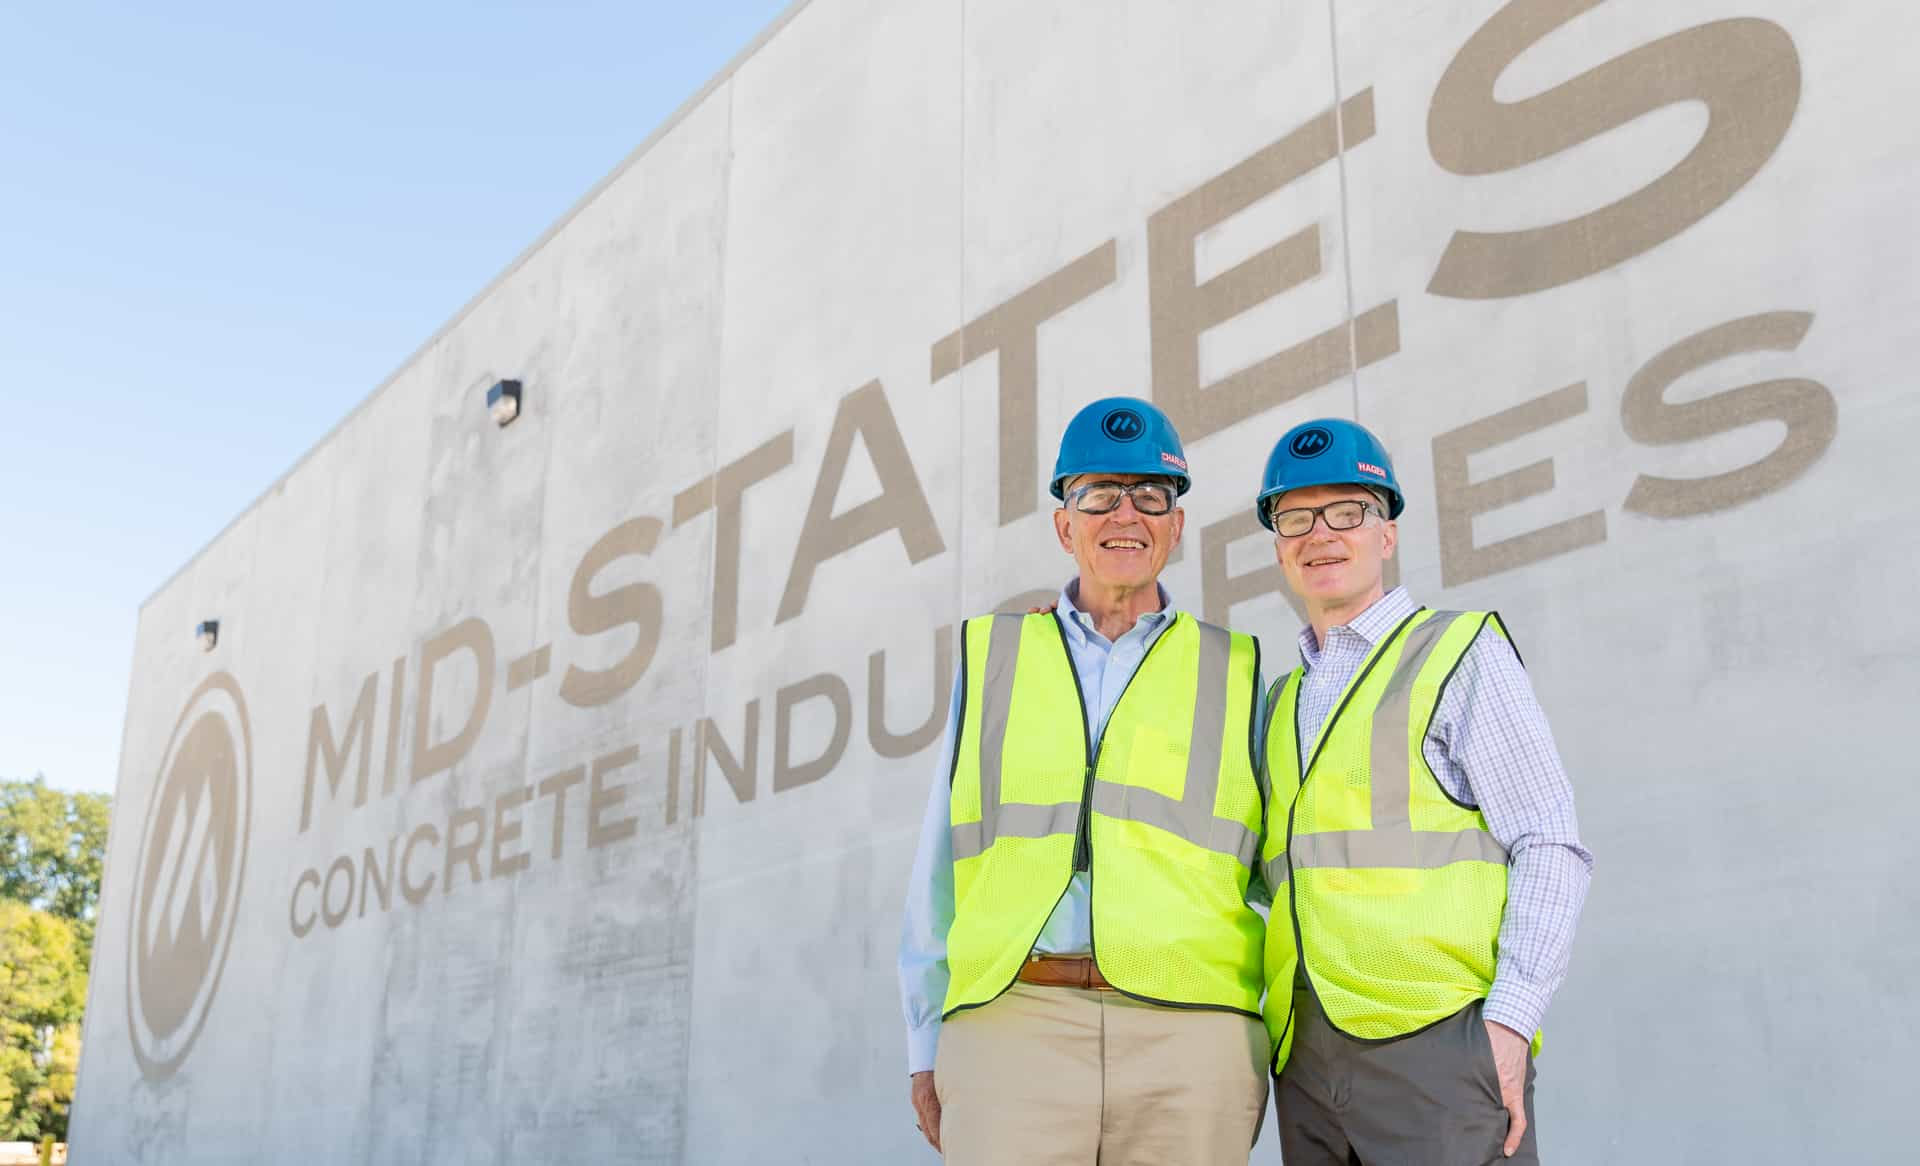 Mid-States Concrete Industries